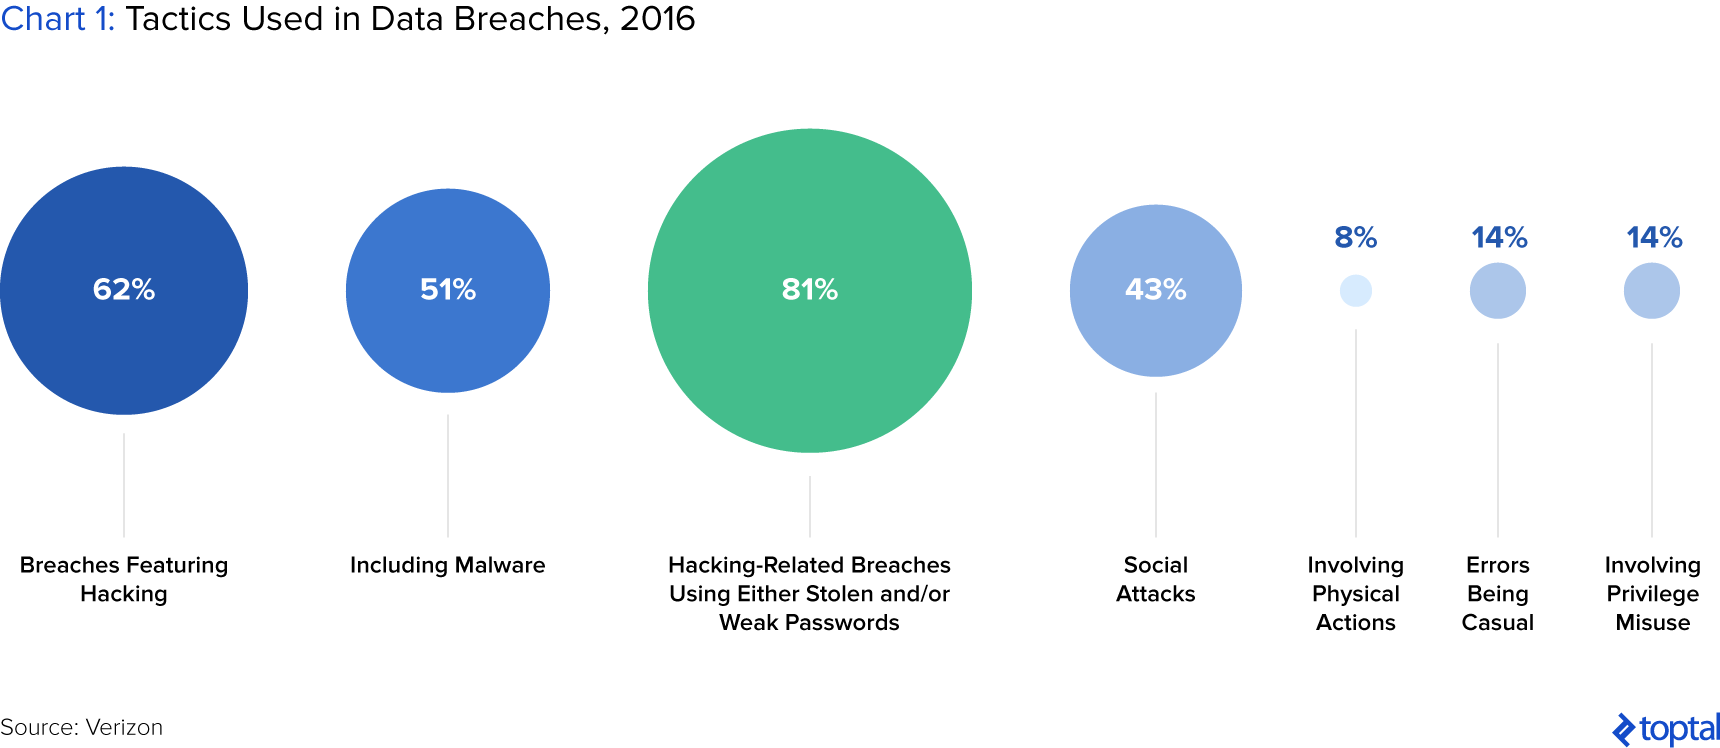 Chart 1: Tactics Used in Data Breaches, 2016